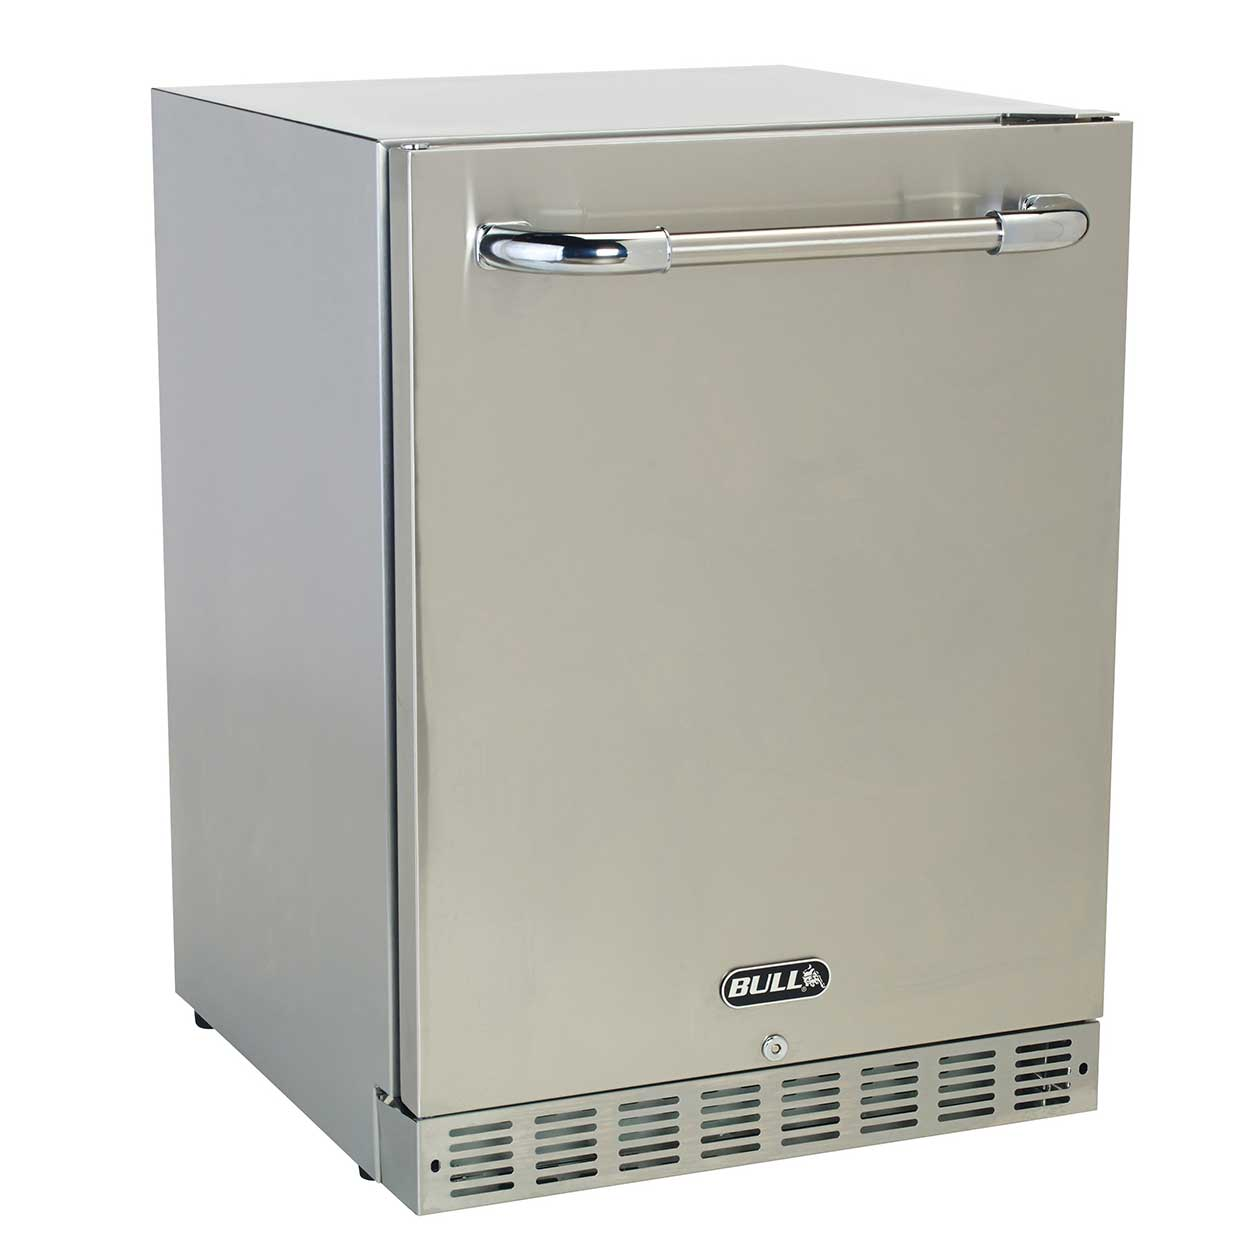 Bull Premium Stainless Steel Outdoor Rated 24 Inch Kitchen Refrigerator  Fridge